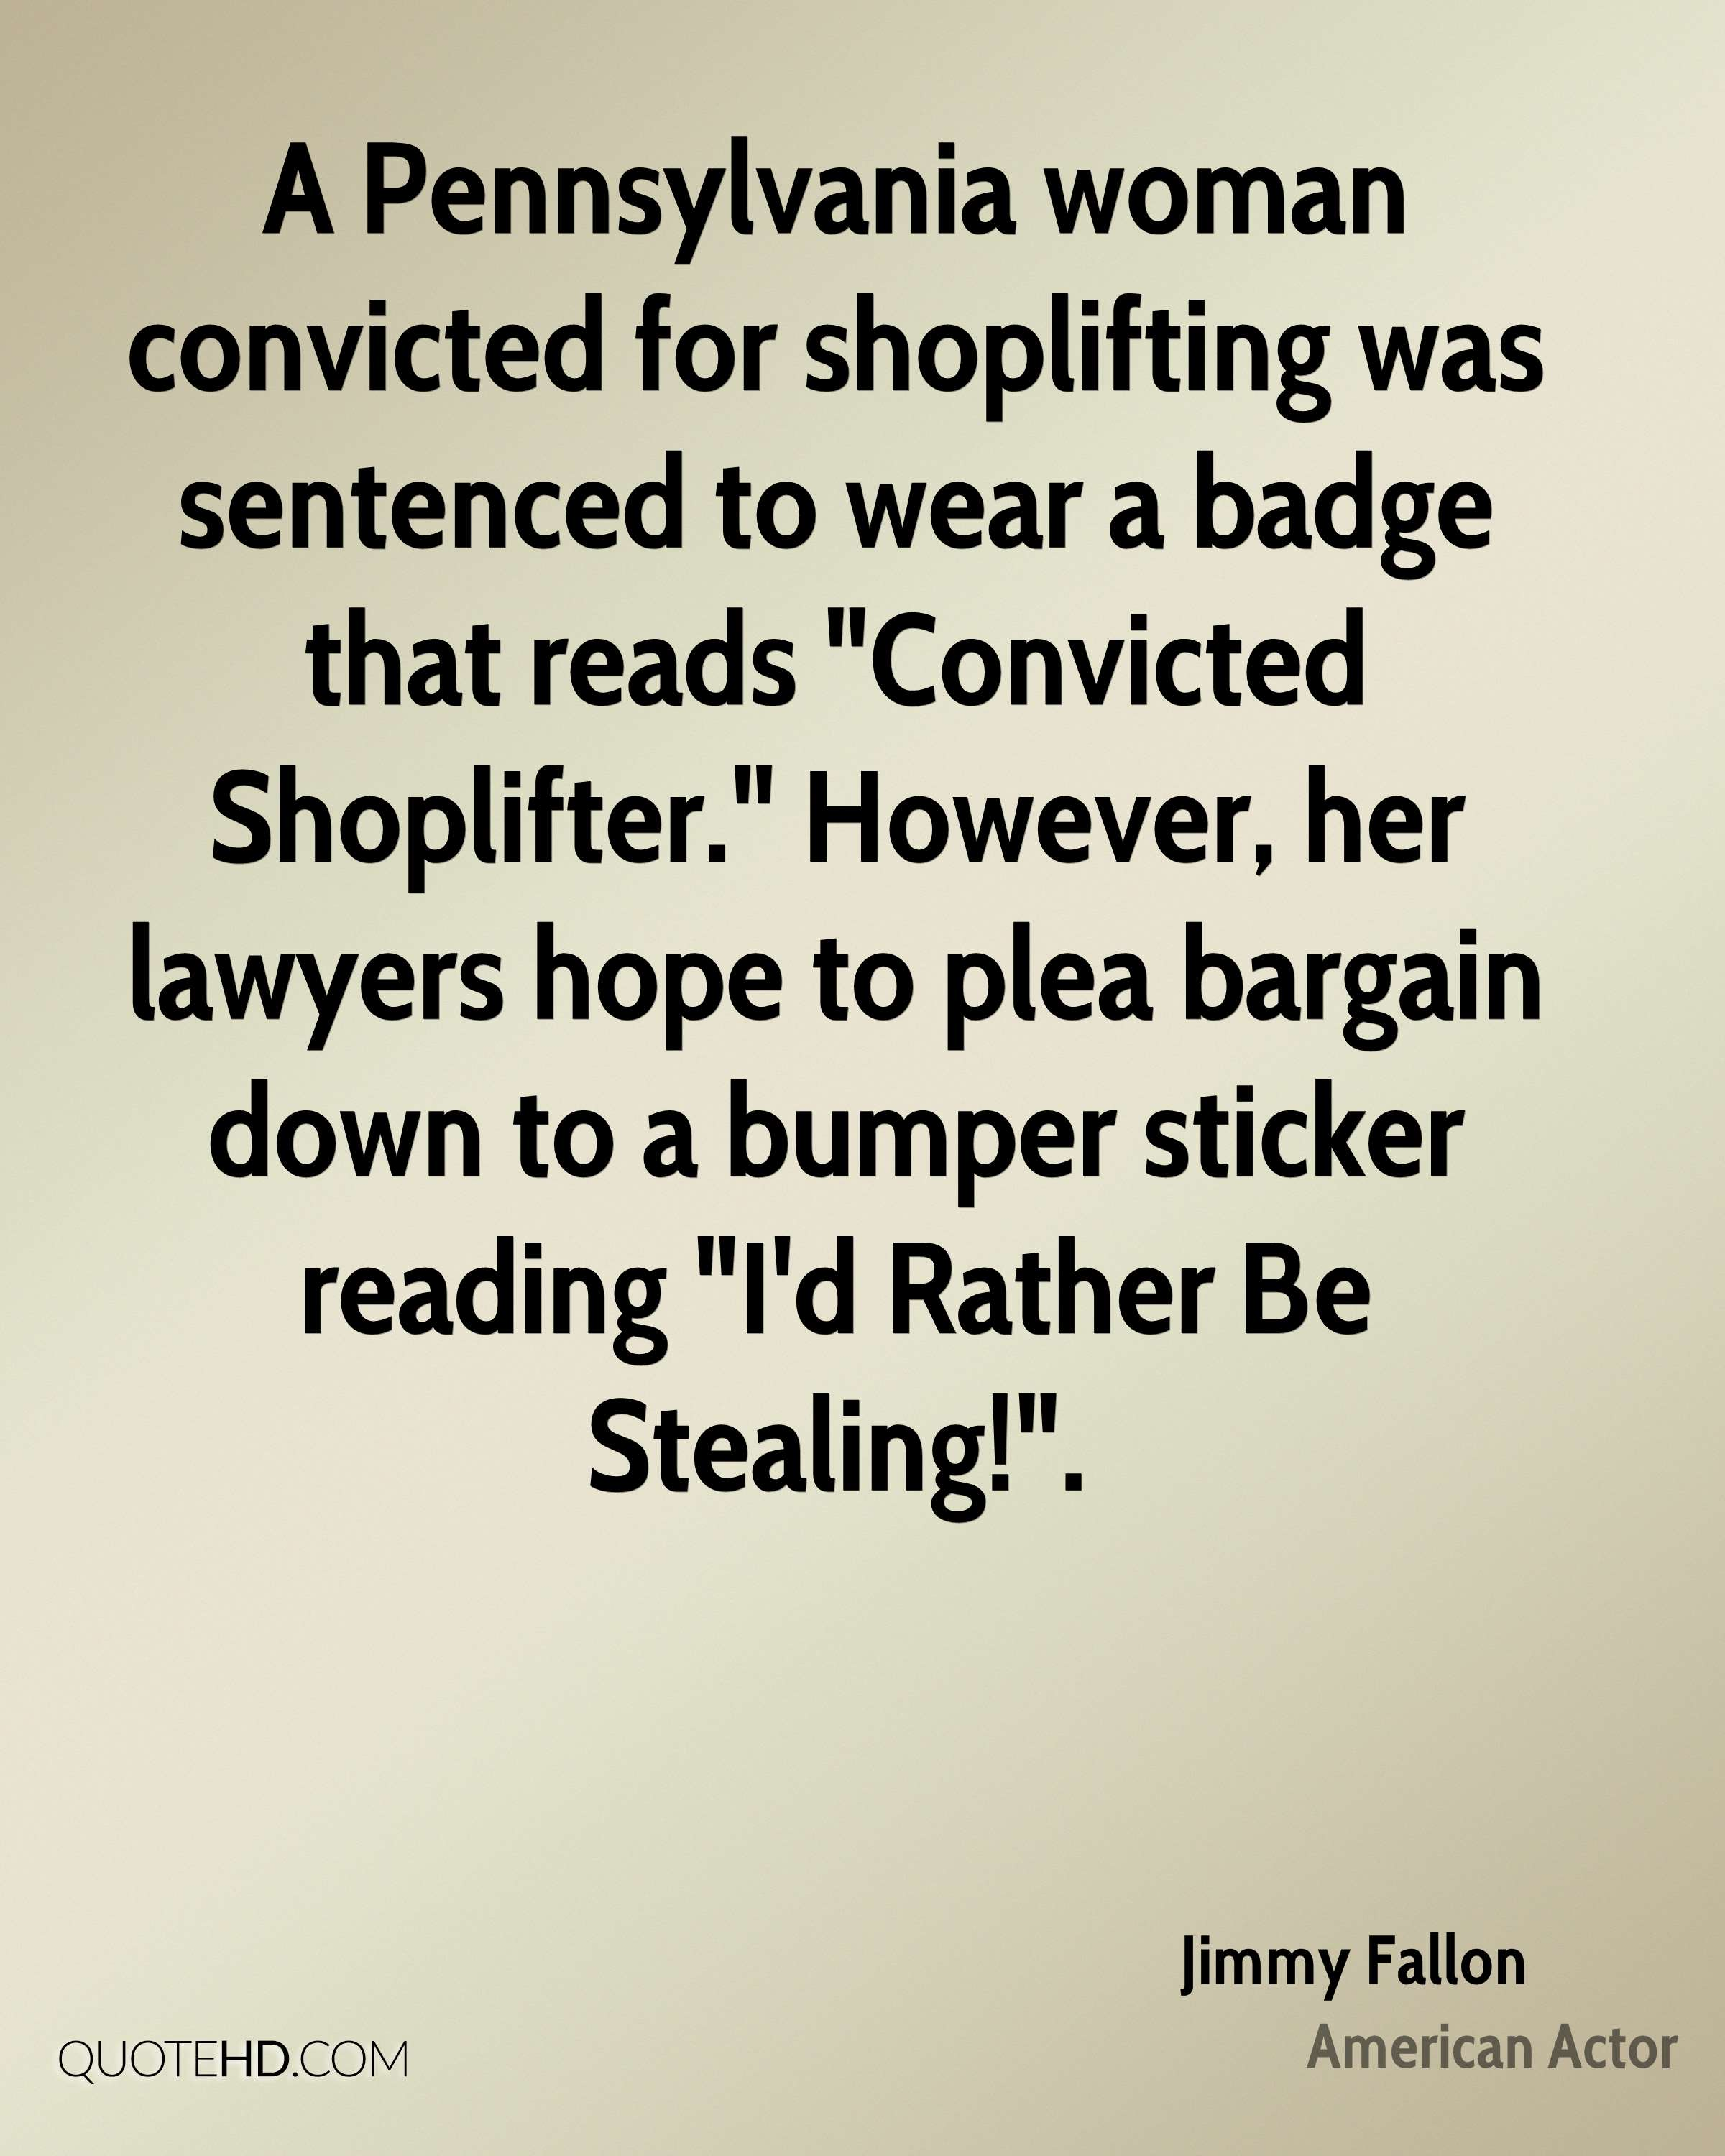 """A Pennsylvania woman convicted for shoplifting was sentenced to wear a badge that reads """"Convicted Shoplifter."""" However, her lawyers hope to plea bargain down to a bumper sticker reading """"I'd Rather Be Stealing!""""."""